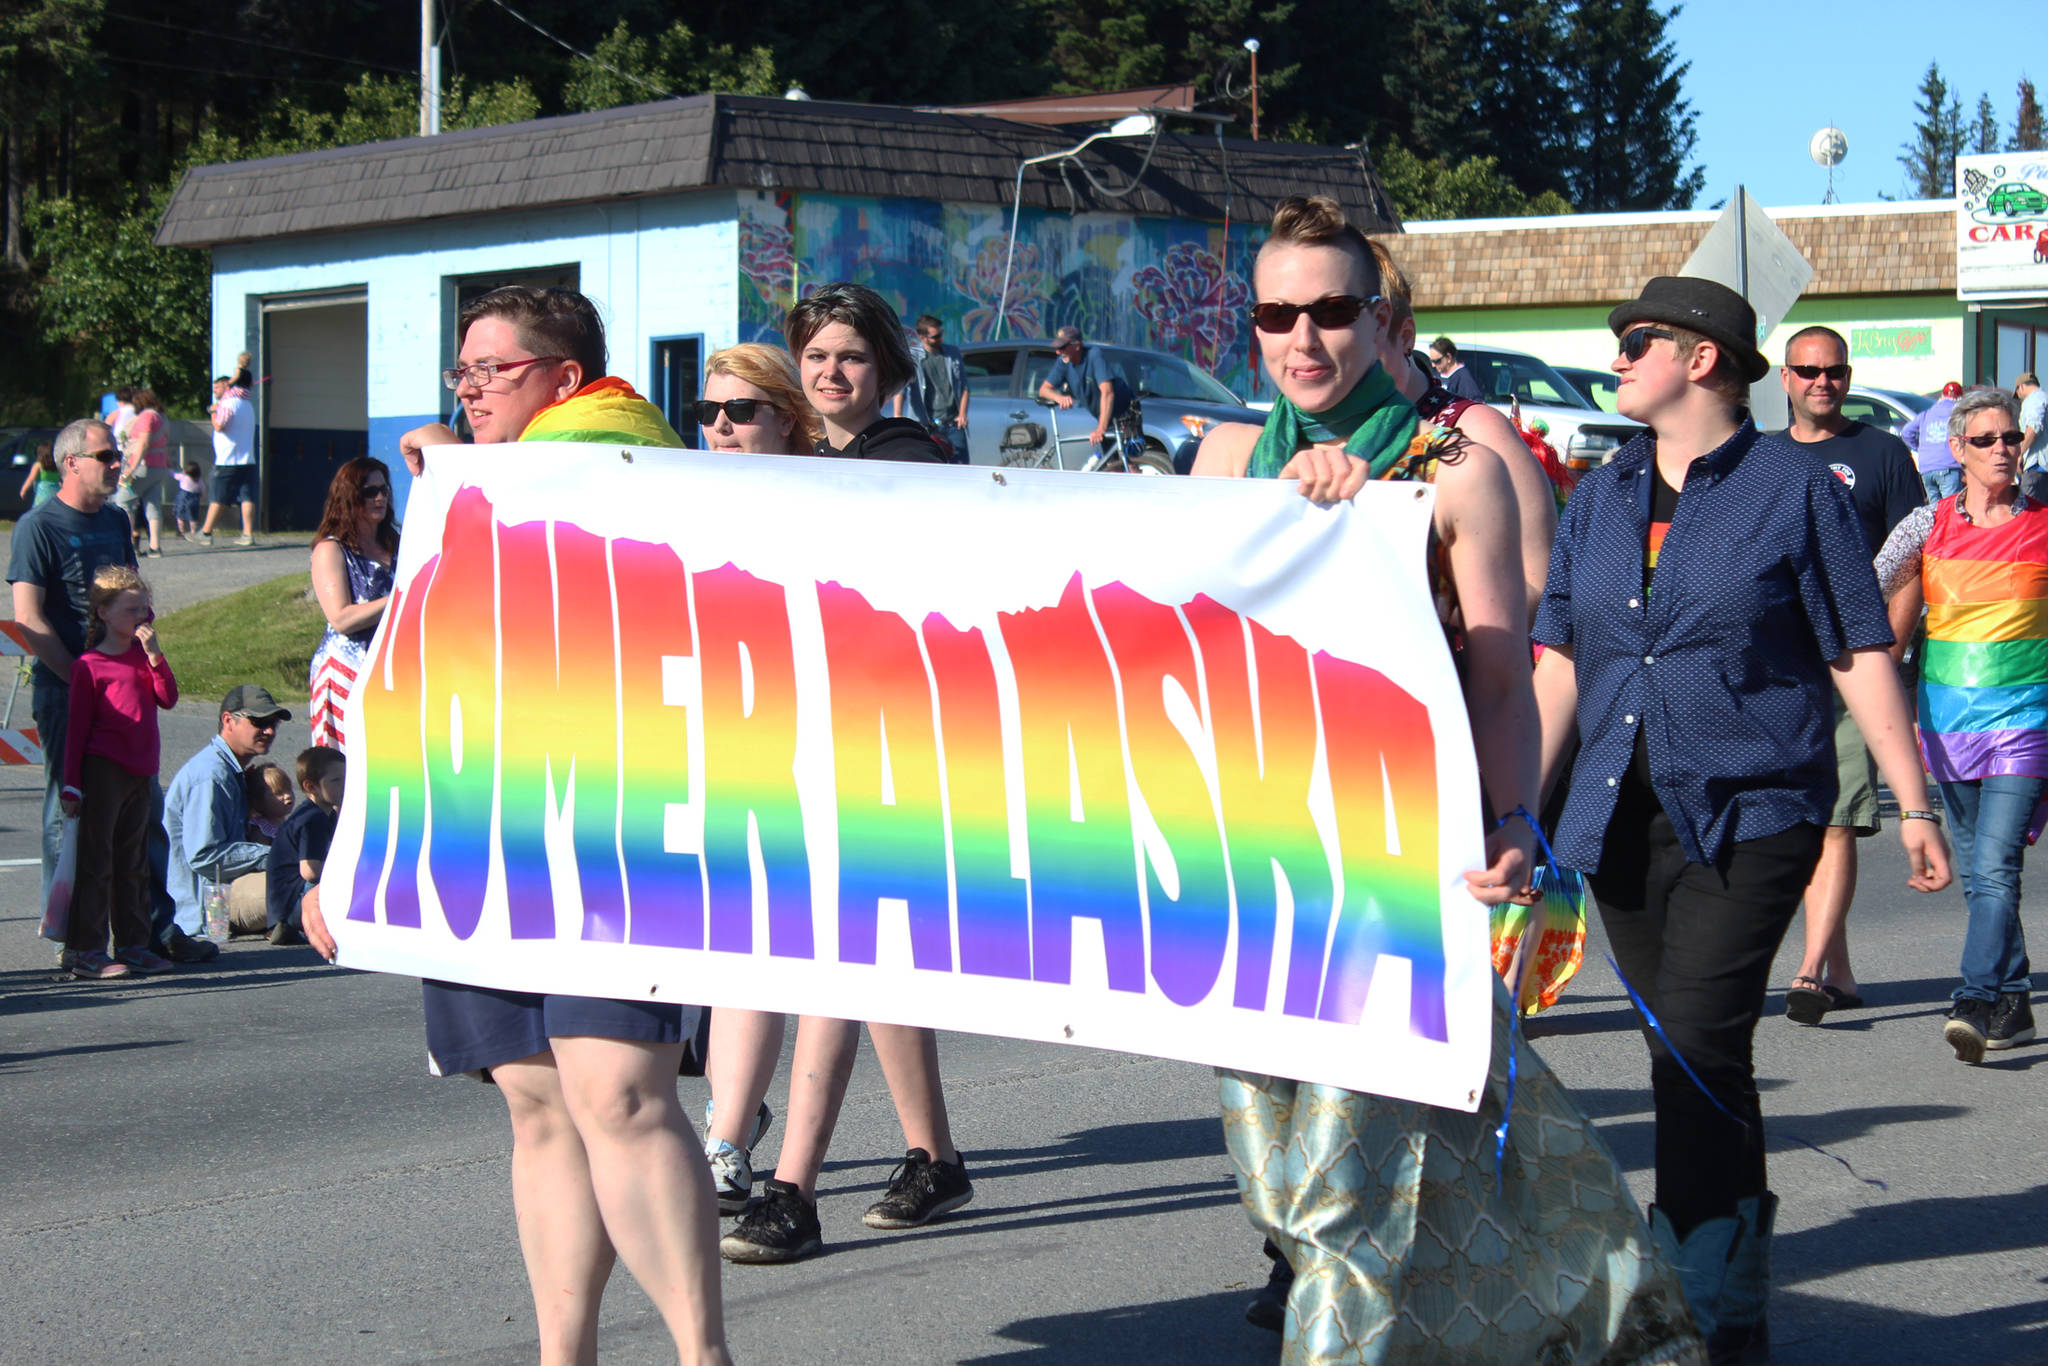 A small crowd of people march in the LGBTQ Pride section of the annual Independence Day parade Wednesday, July 4, 2018 along Pioneer Avenue in Homer, Alaska. (Photo by Megan Pacer/Homer News)